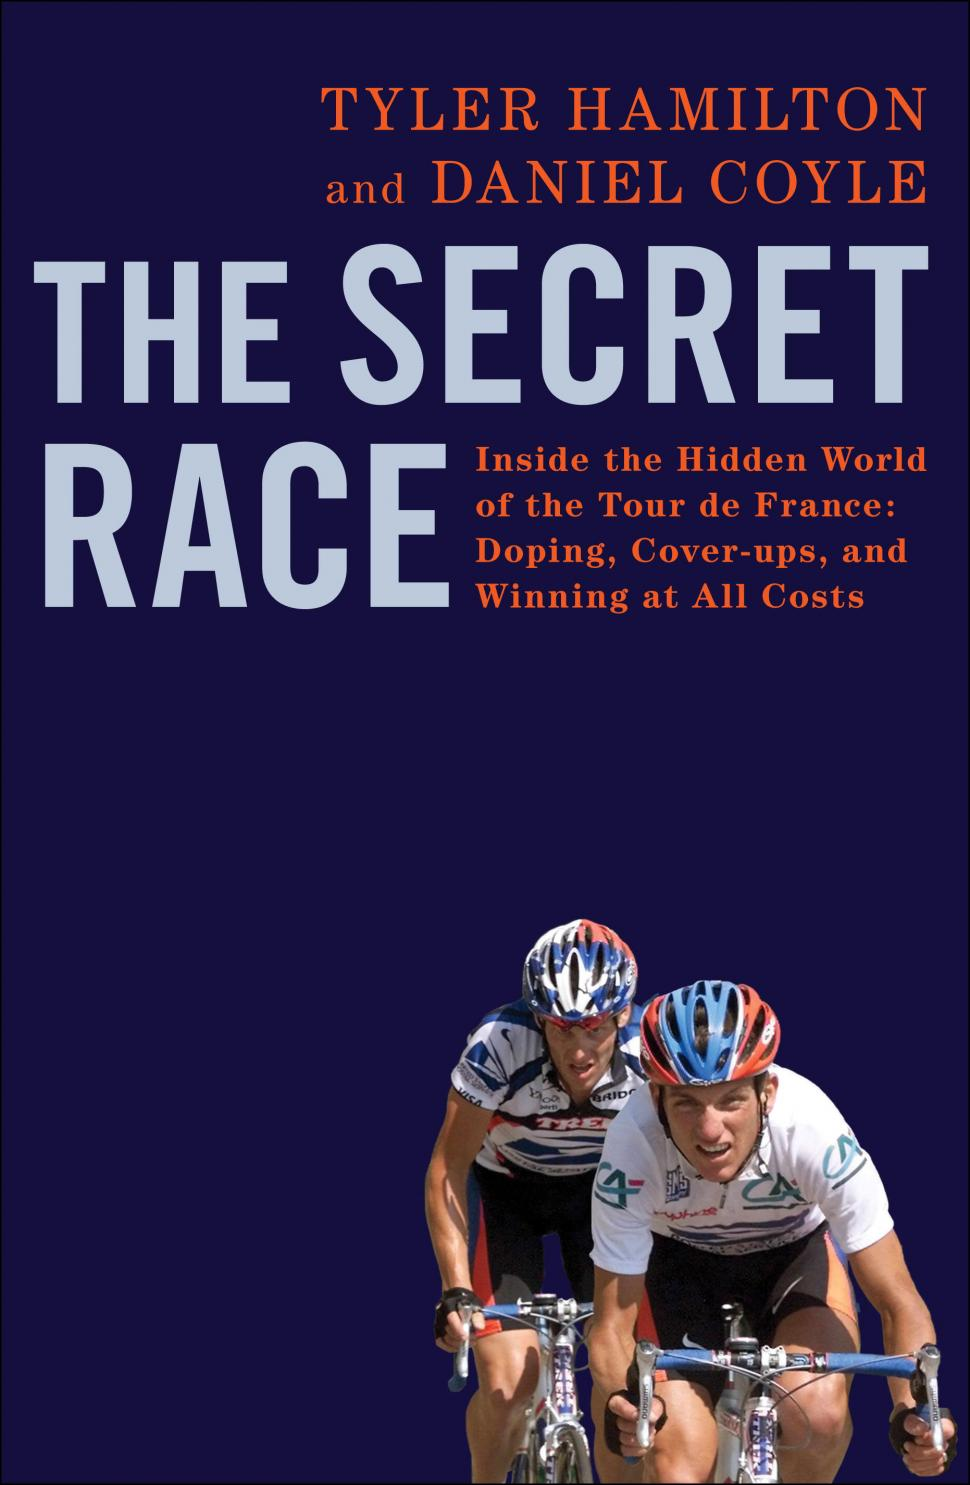 Tyler Hamilton: The Secret Race